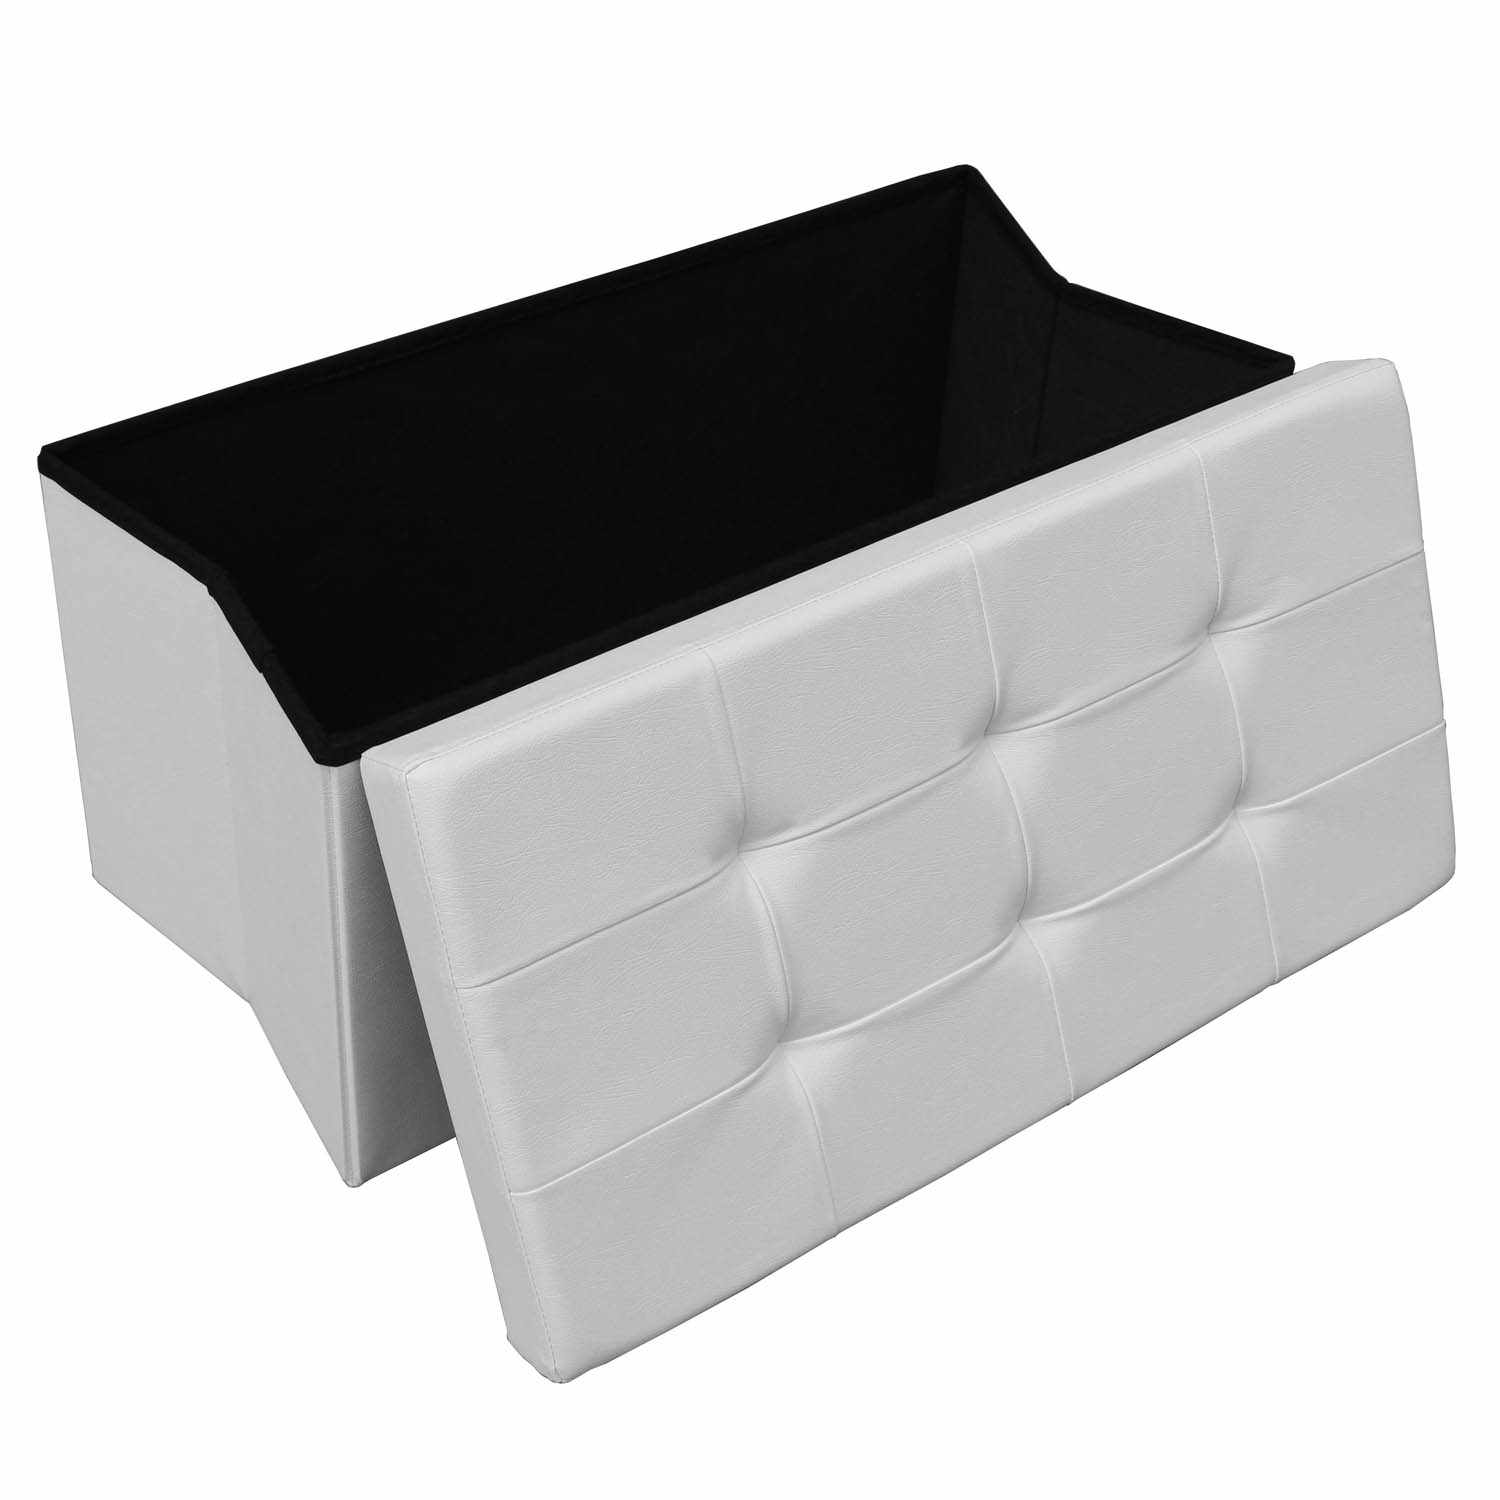 deco in paris banquette coffre pliable blanche steven banquette pliable blanc steven. Black Bedroom Furniture Sets. Home Design Ideas